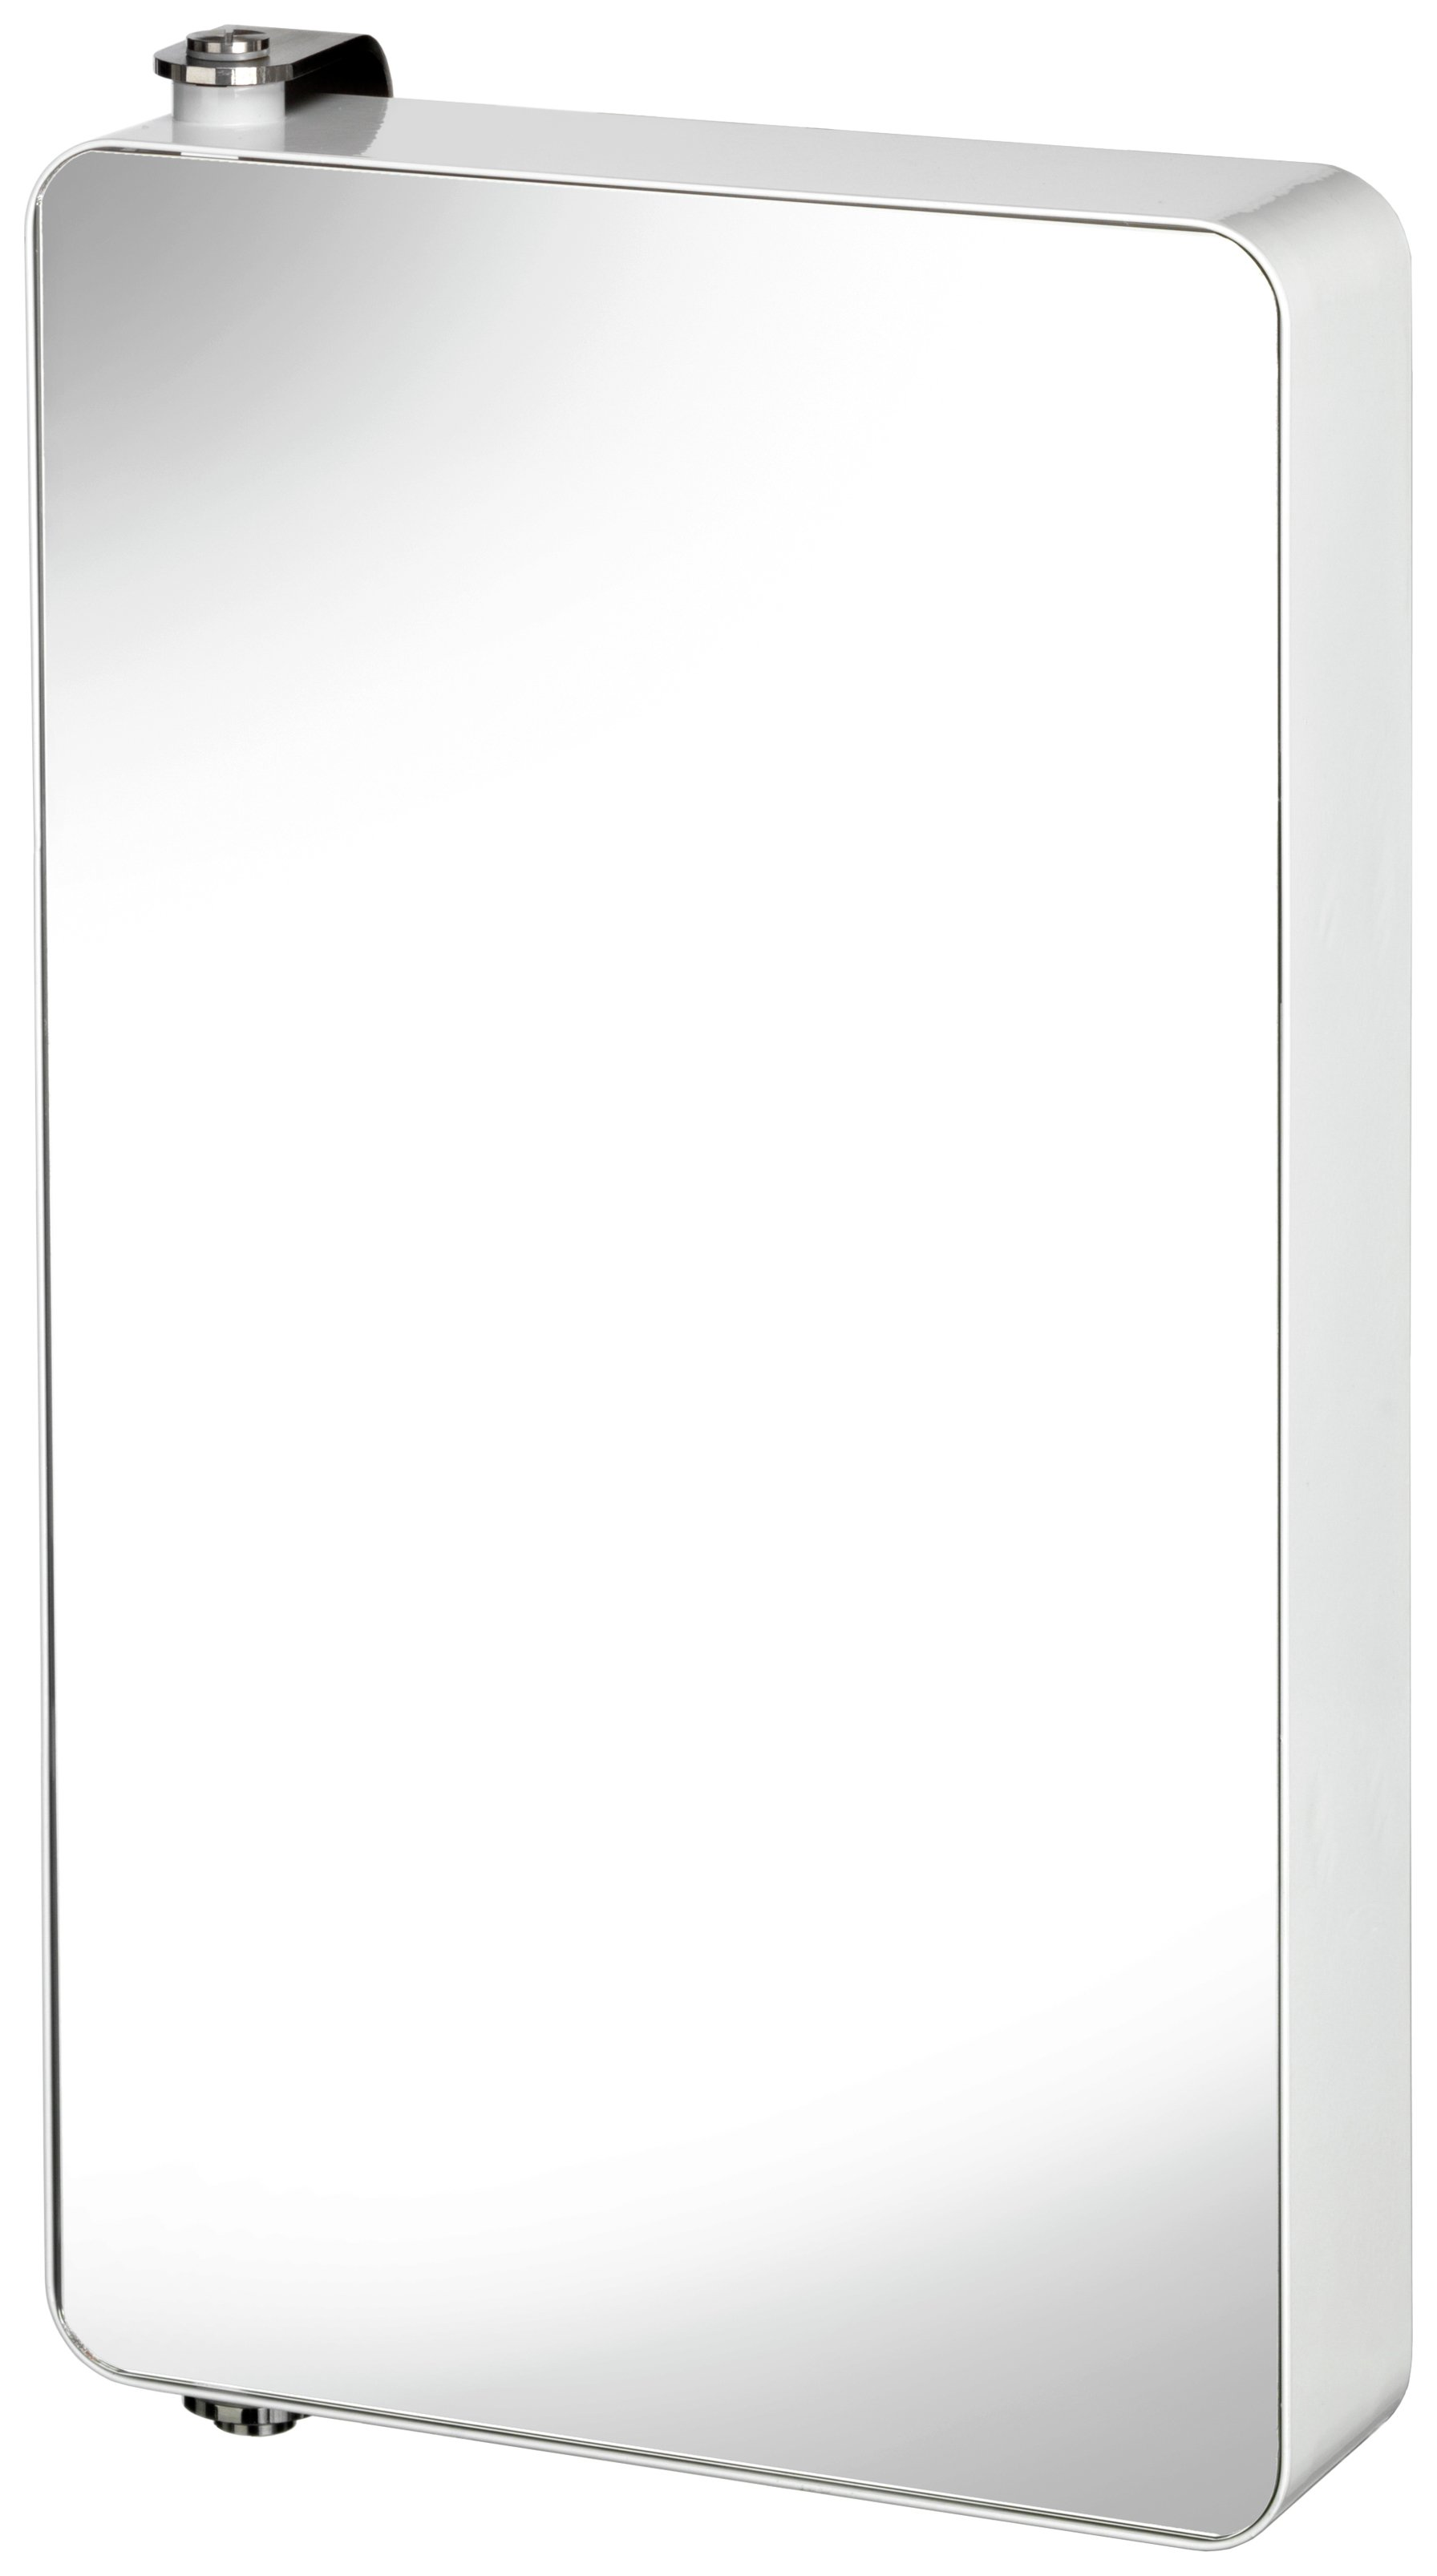 Image of Croydex Arun Large Pivoting St Steel Mirror Cabinet - White